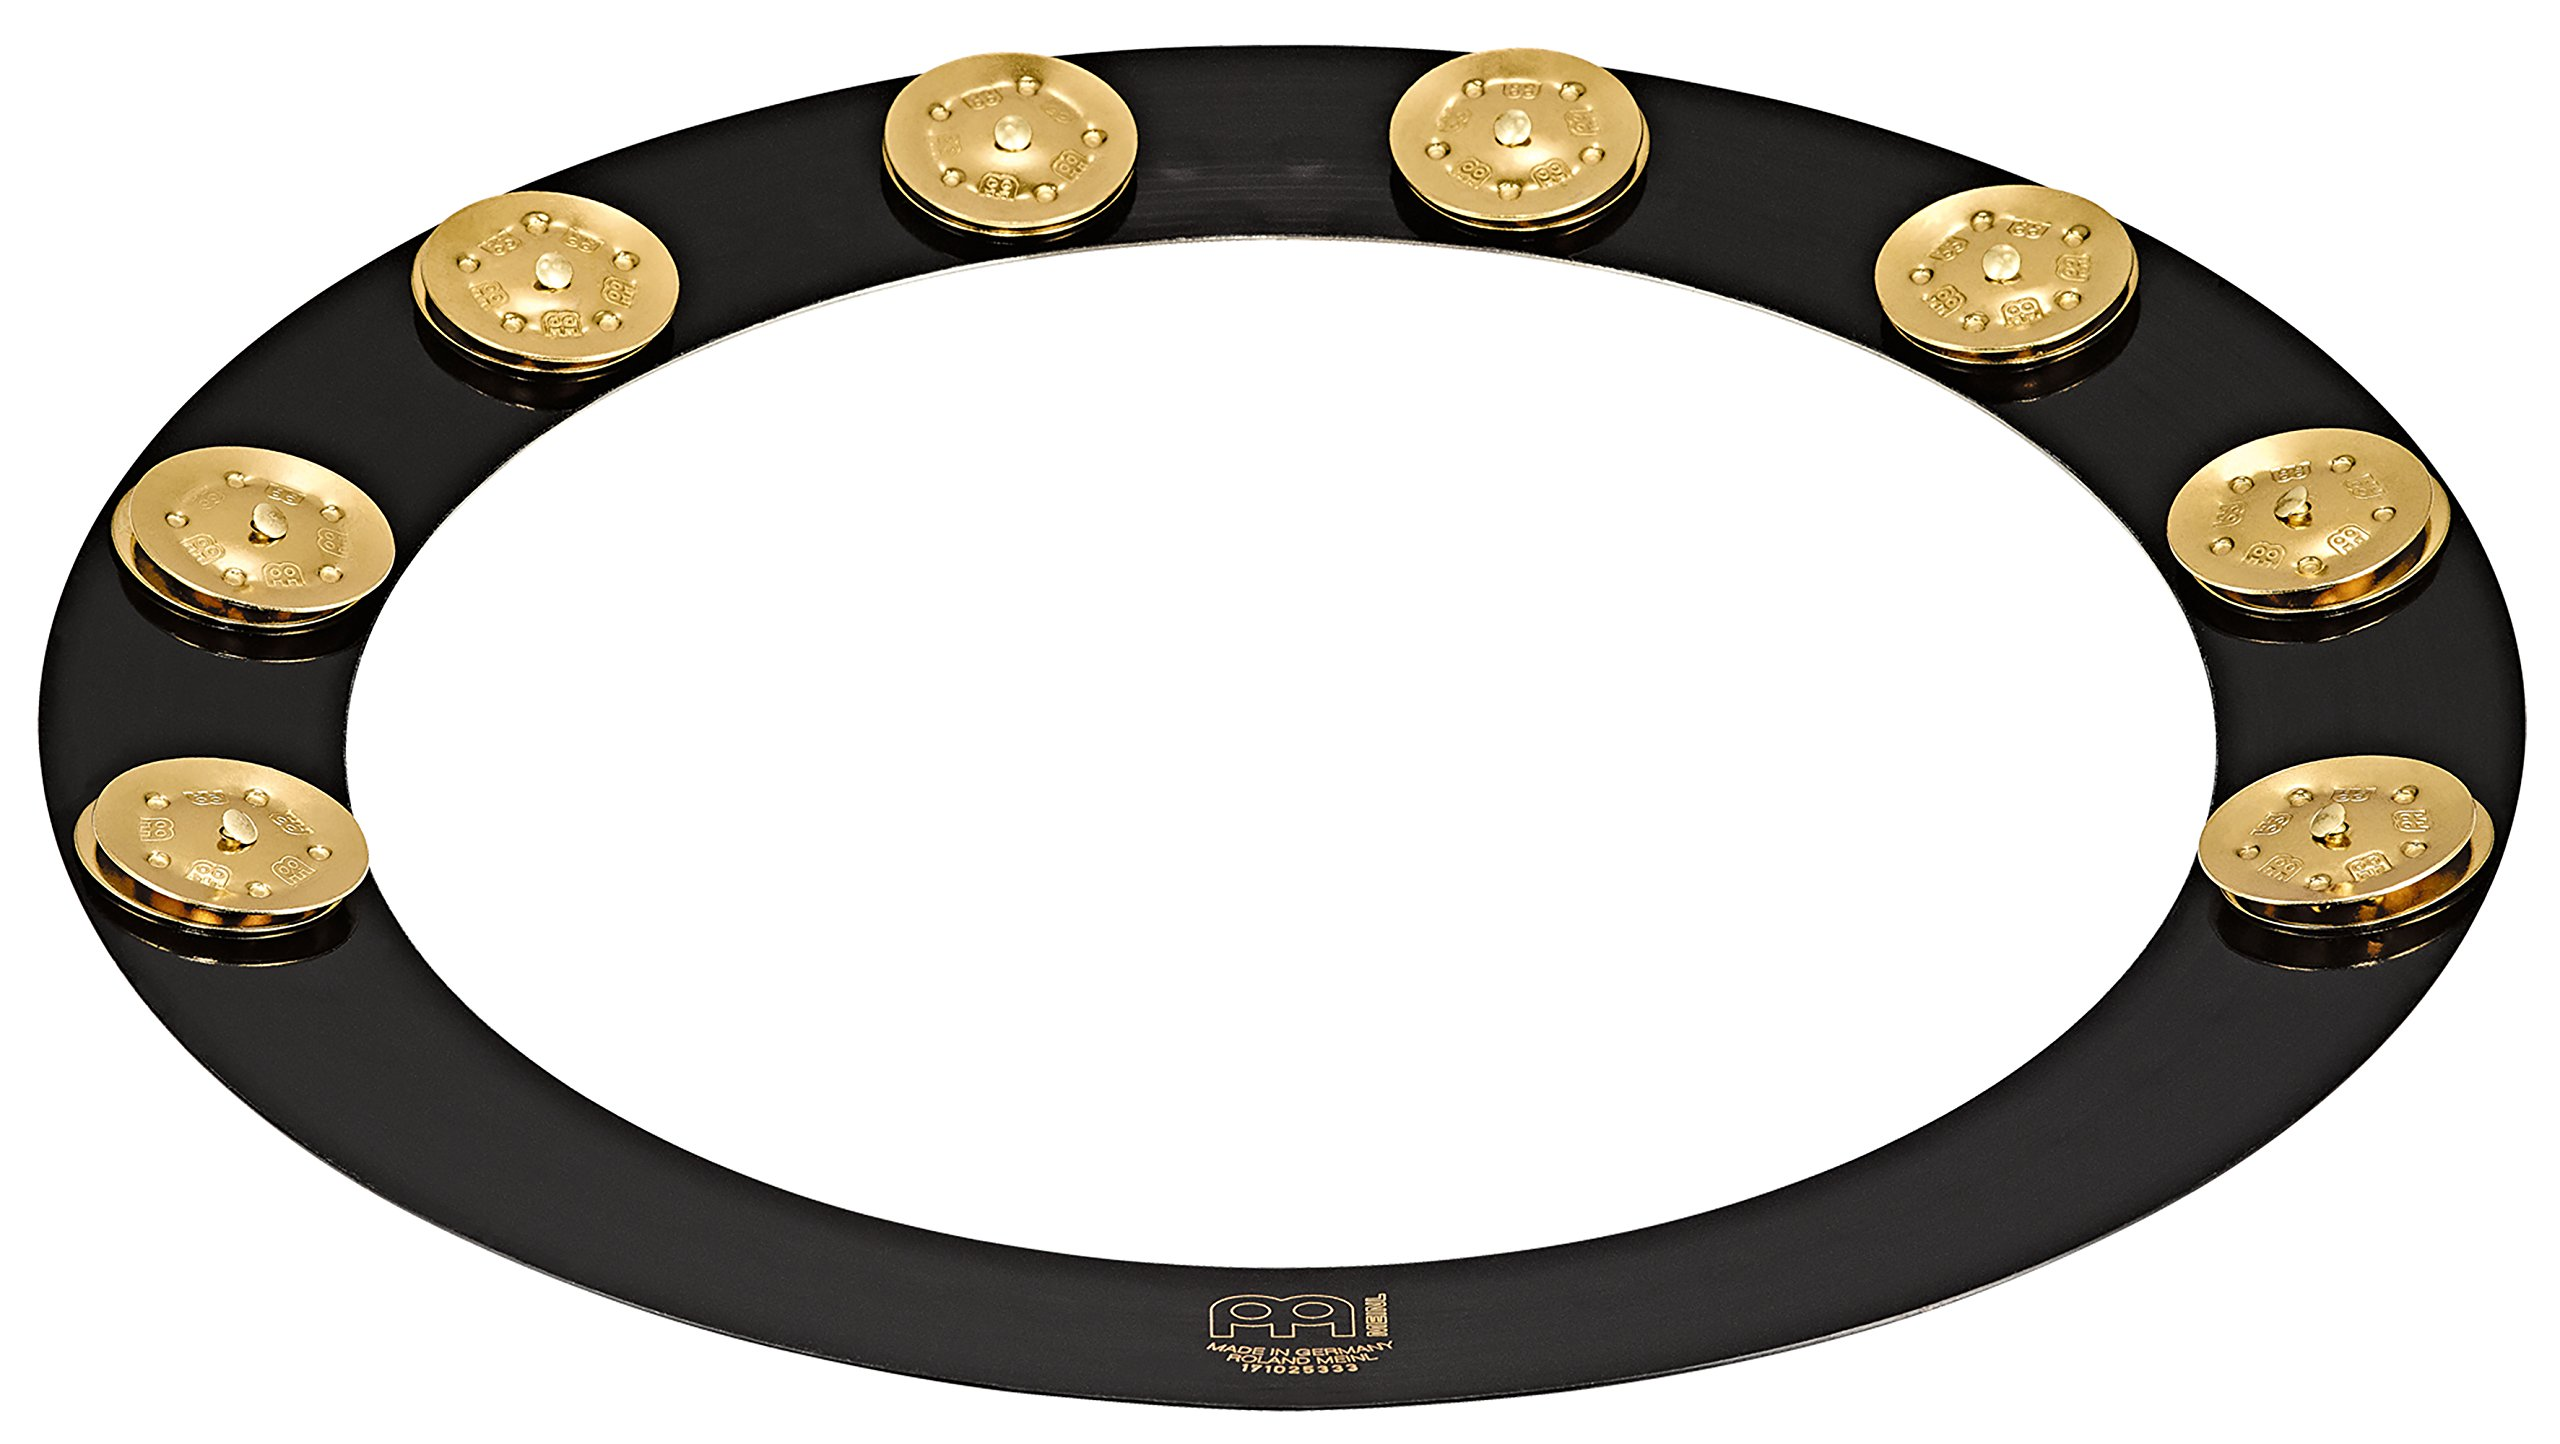 Meinl Percussion Backbeat Pro 14'' Brass Hoop Tambourine with Brass Jingles for Snare Drums, TWO YEAR WARRANTY (BBP14) by Meinl Cymbals